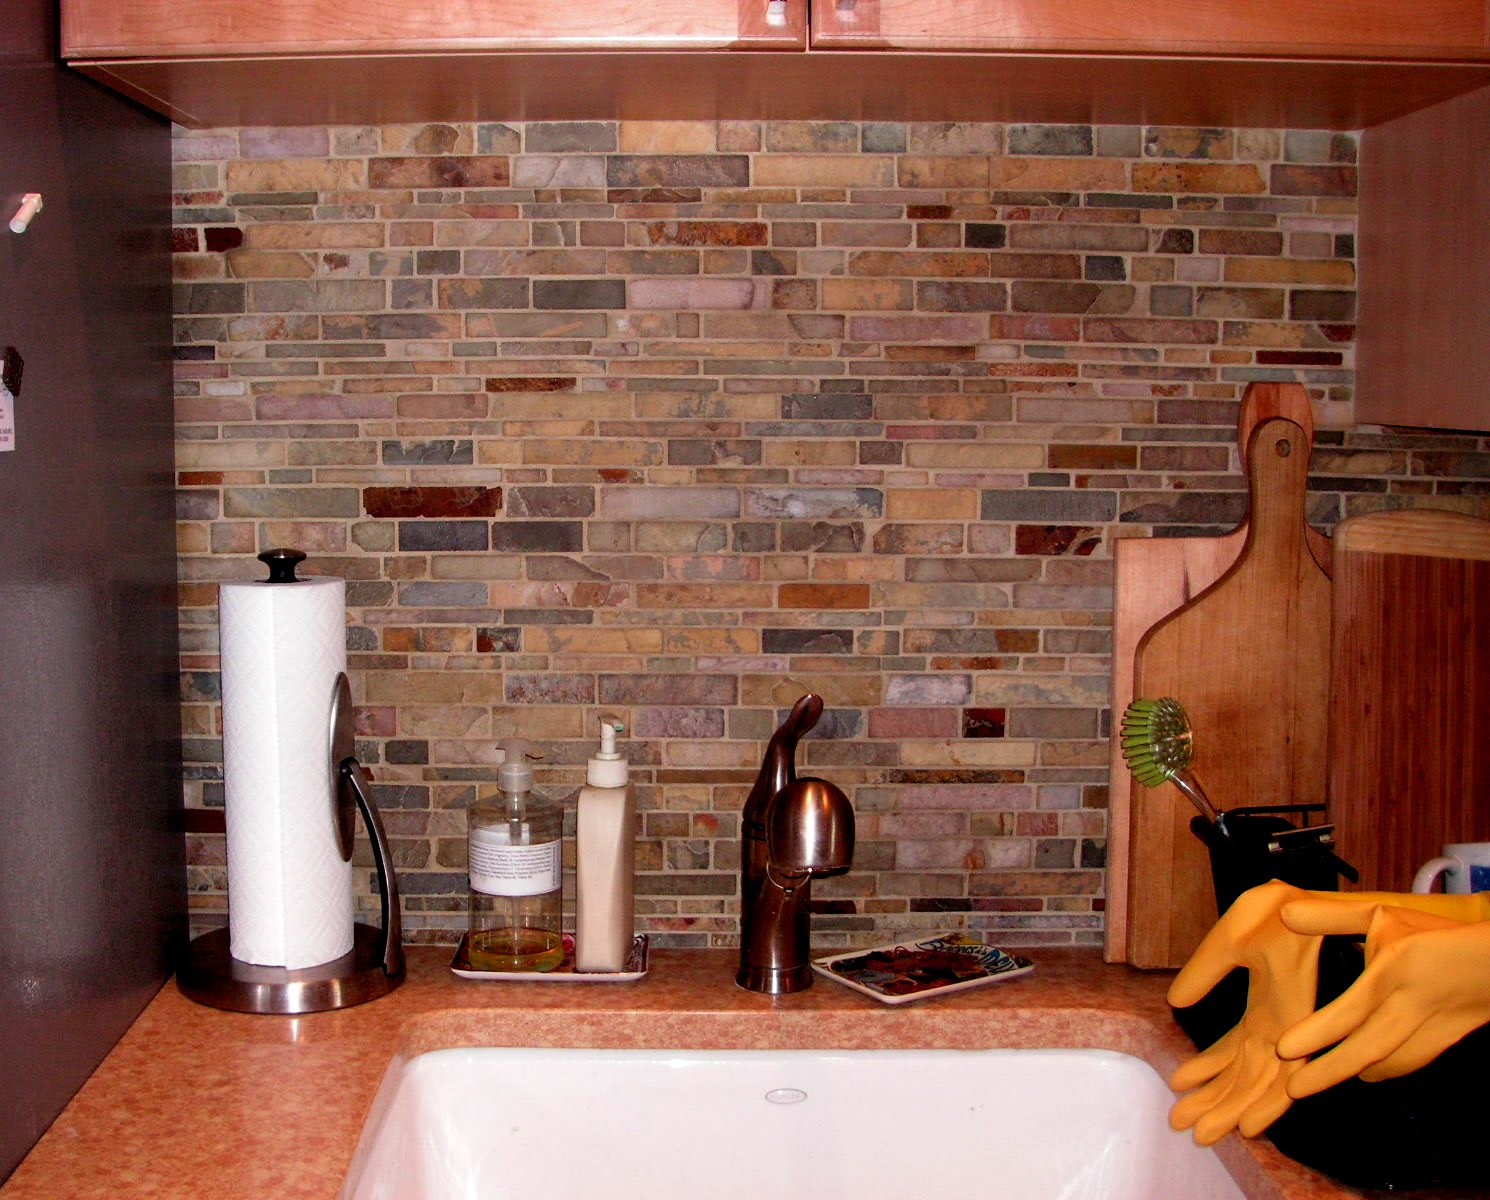 Color forte july 2010 Kitchen design of tiles